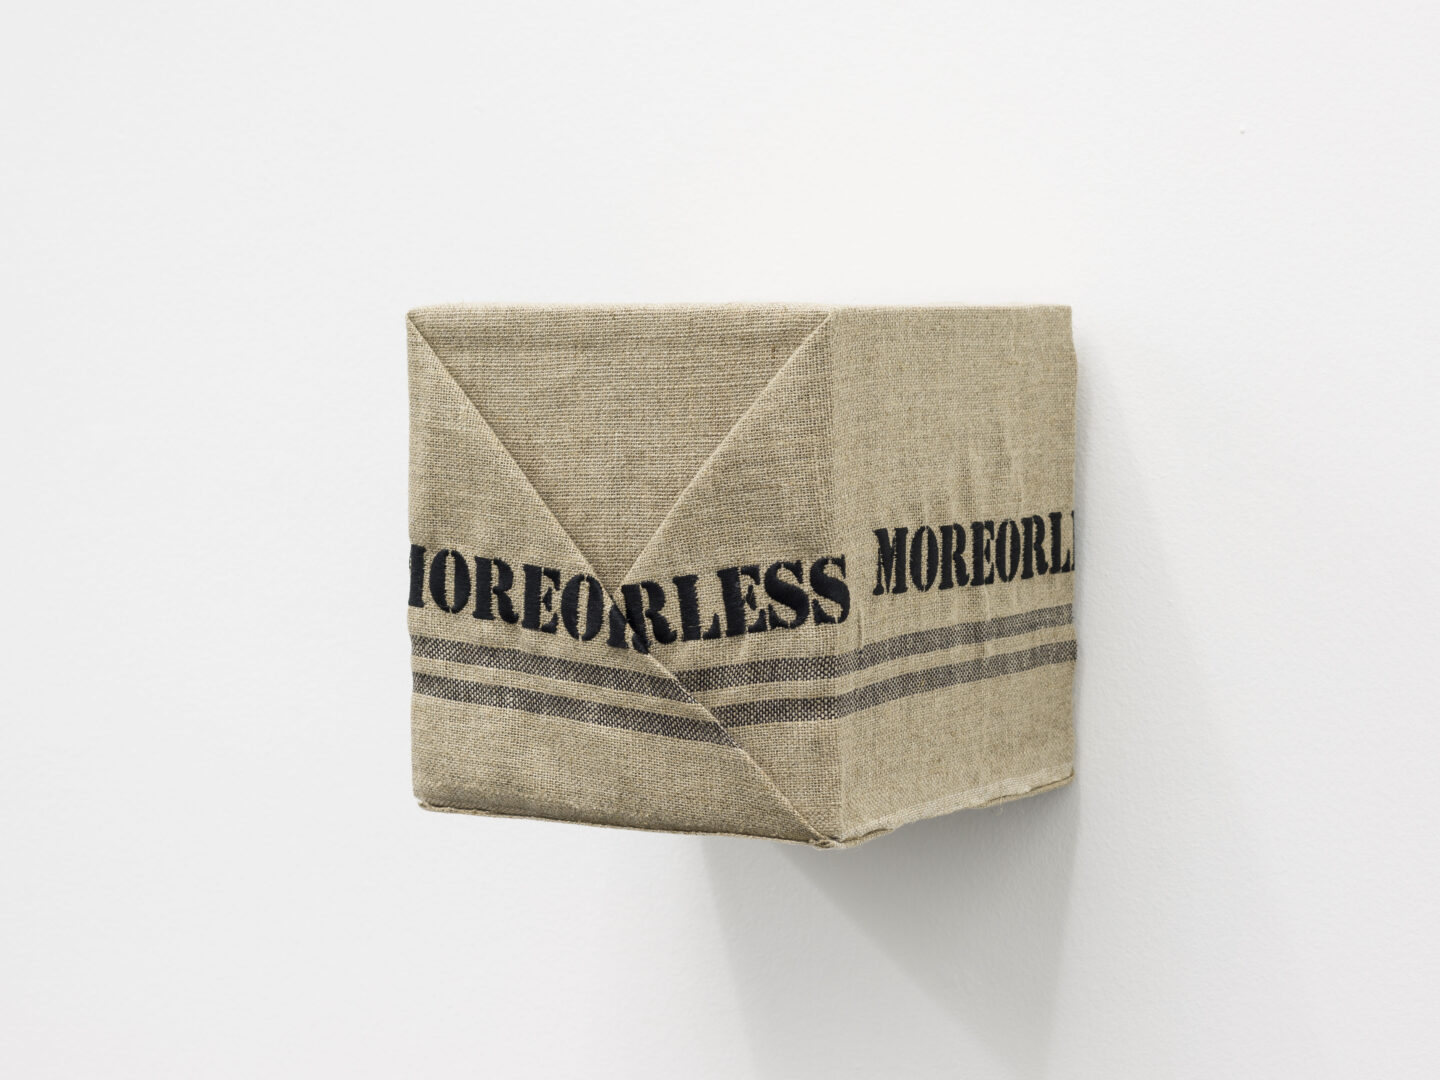 Exhibition View Rachal Bradley Soloshow «Erotics of Infrastructure iii; view on Rachal Bradley, One Poor Clare (Moreorless), 2020, 100% French linen, cotton, wood, screws, 21 x 21 x 21 cm» at Galerie Gregor Staiger, Zurich, 2020 / Courtesy: the artist and Galerie Gregor Staiger